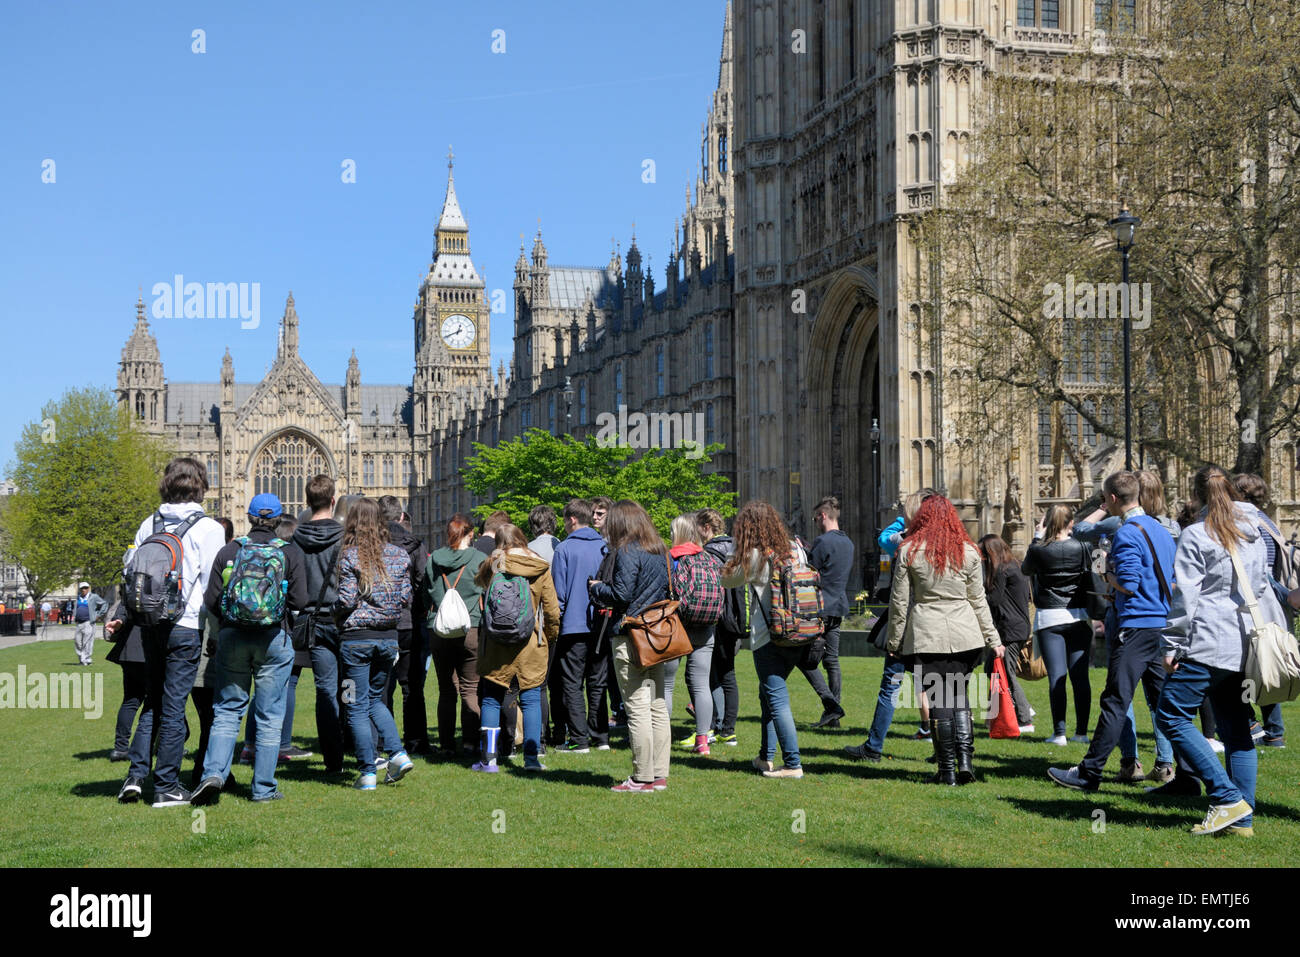 London, England, UK. Foreign school trip to Westminster on College Green - Stock Image